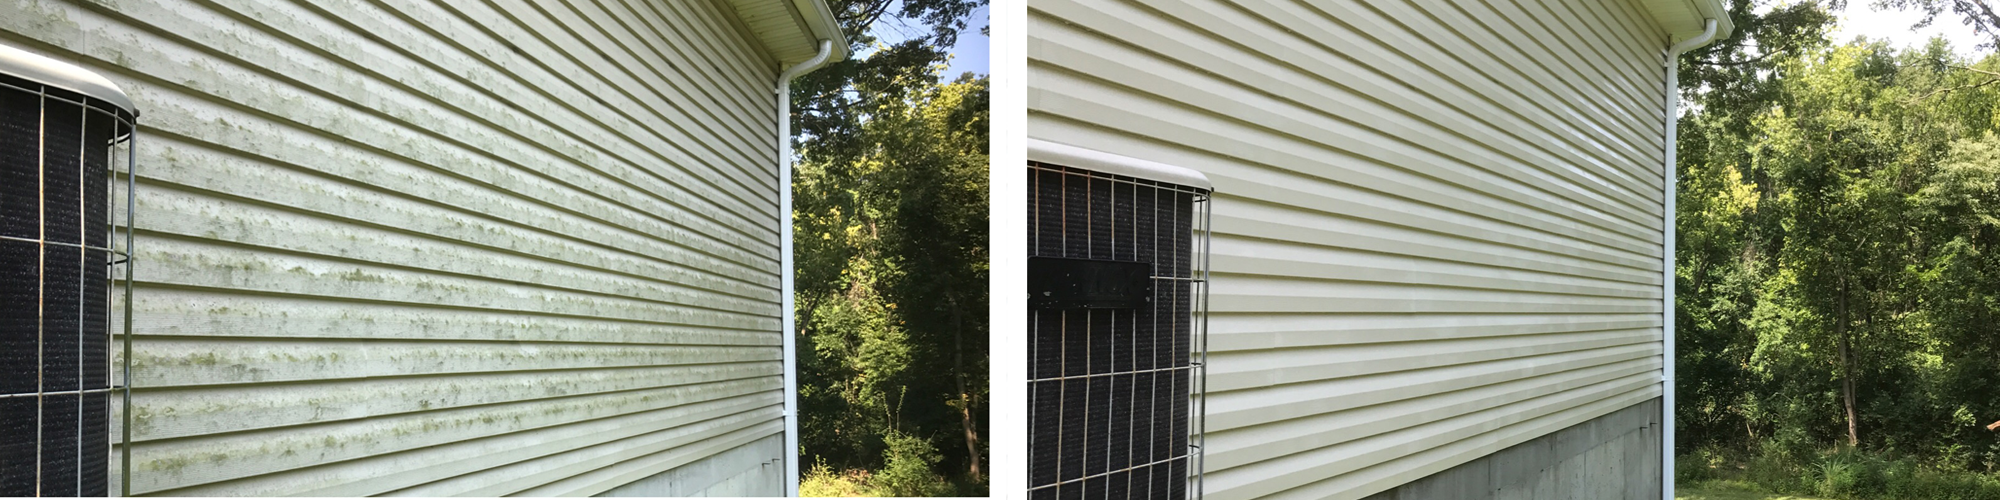 Affordable exterior cleaning services in the St. Peters, MO, area